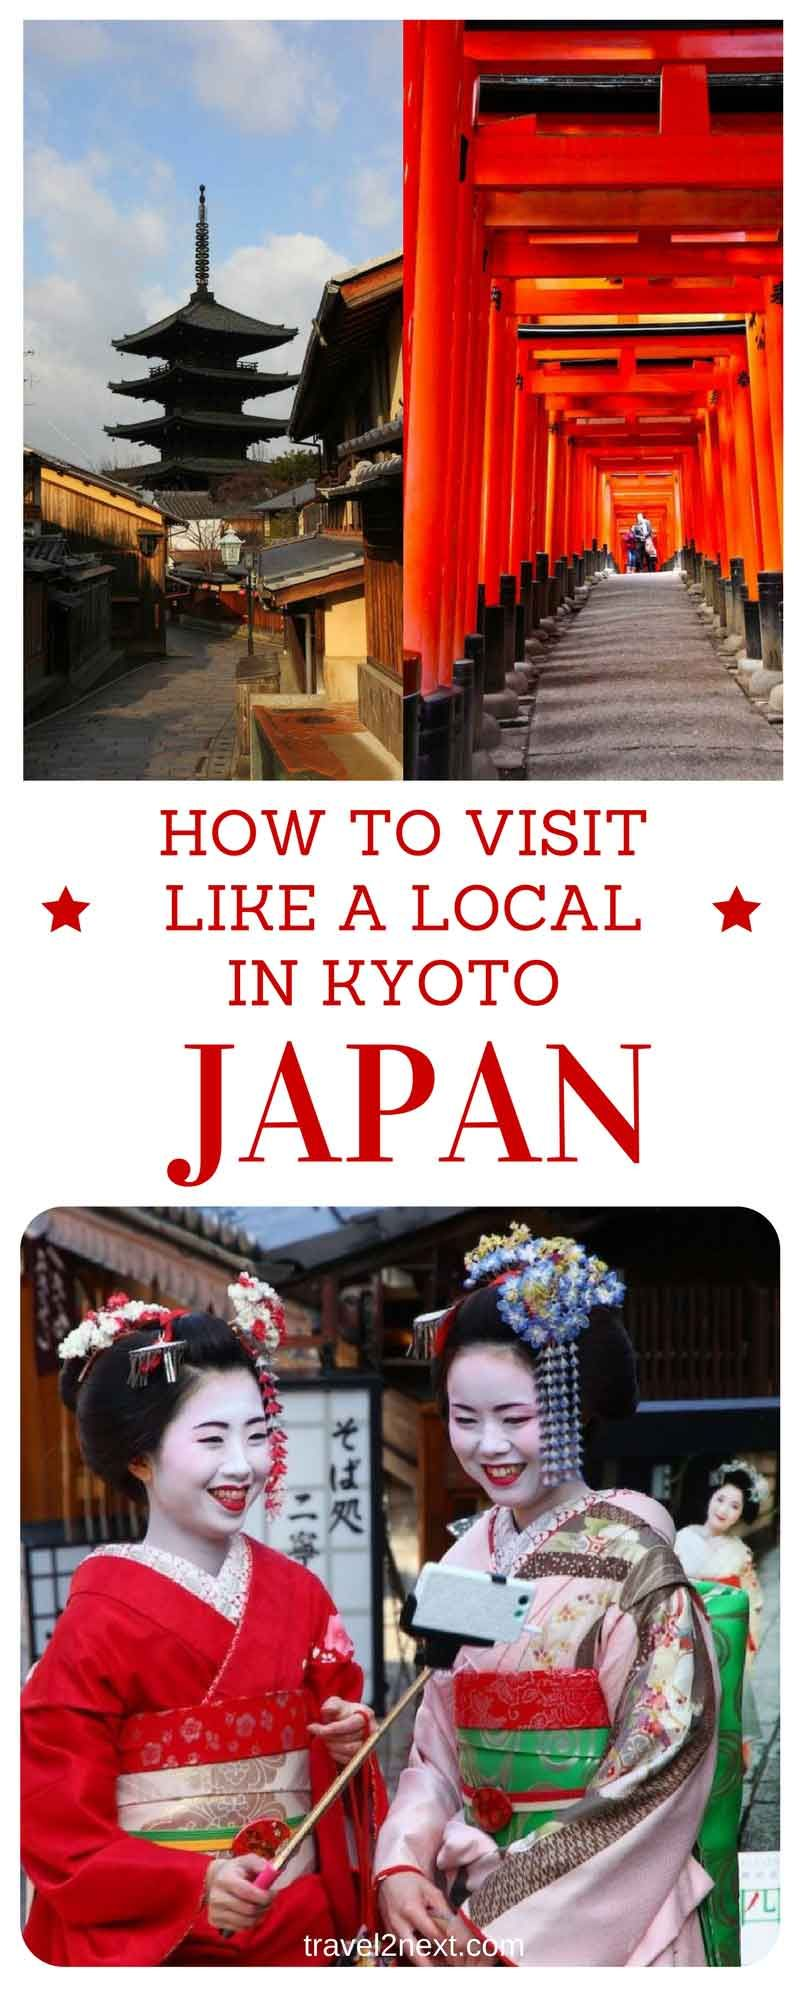 where to stay in kyoto to visit japan like a local | travel2next